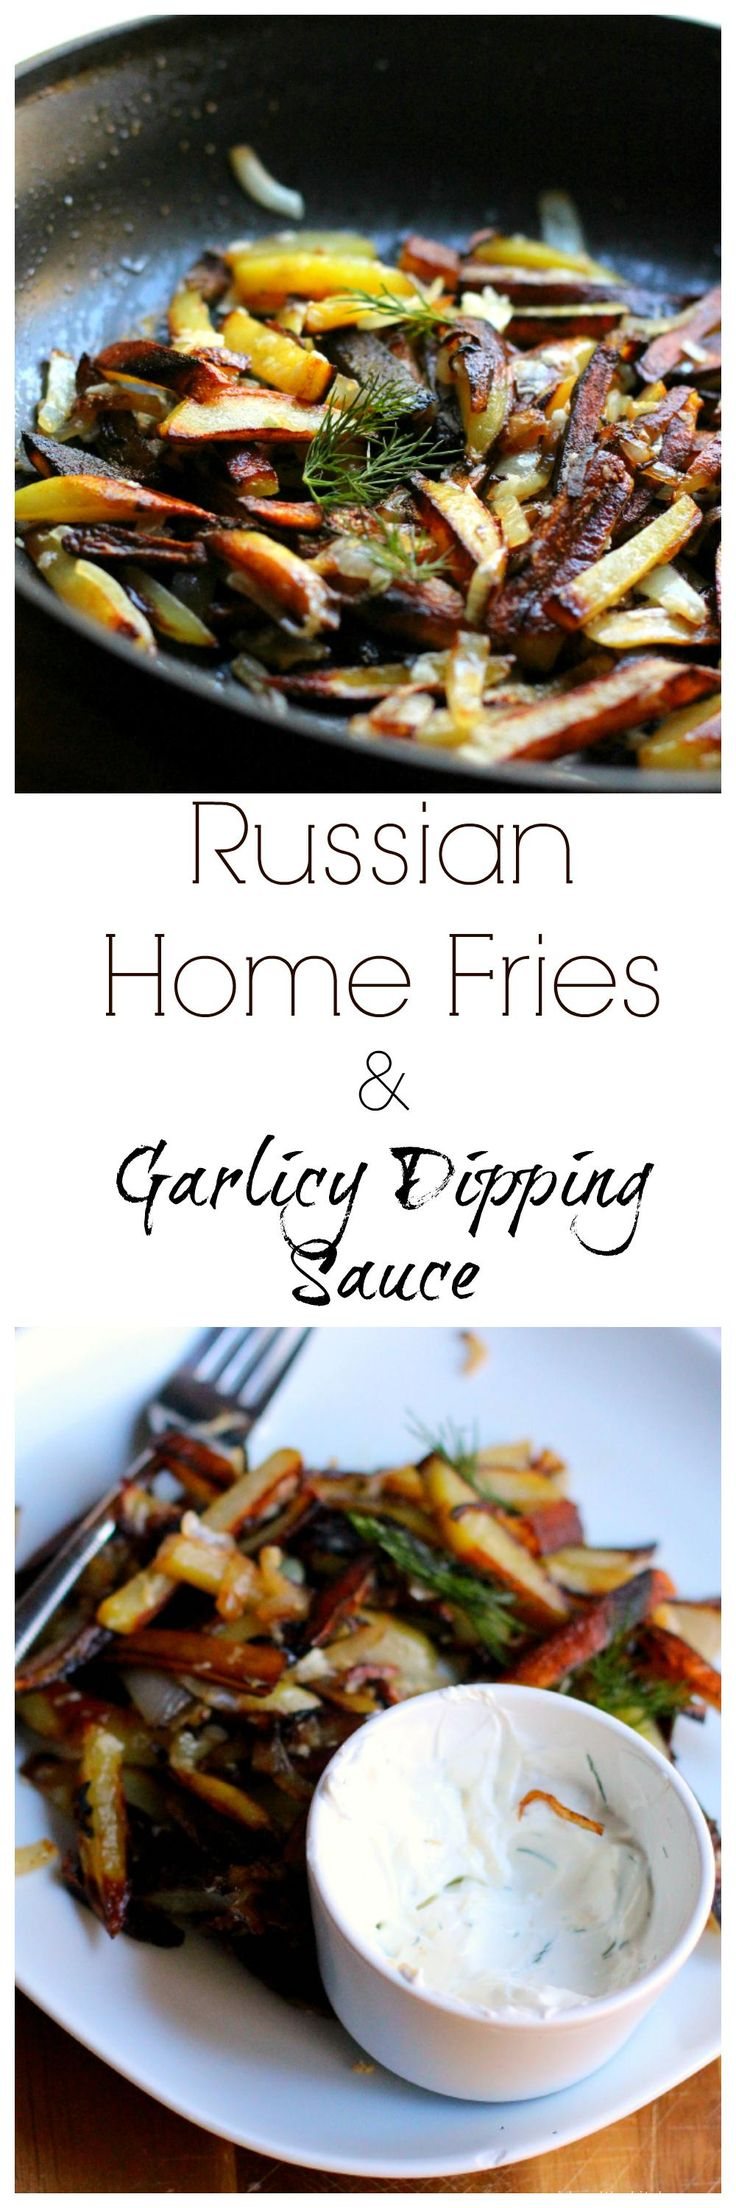 Russian-style salad dressing substitute